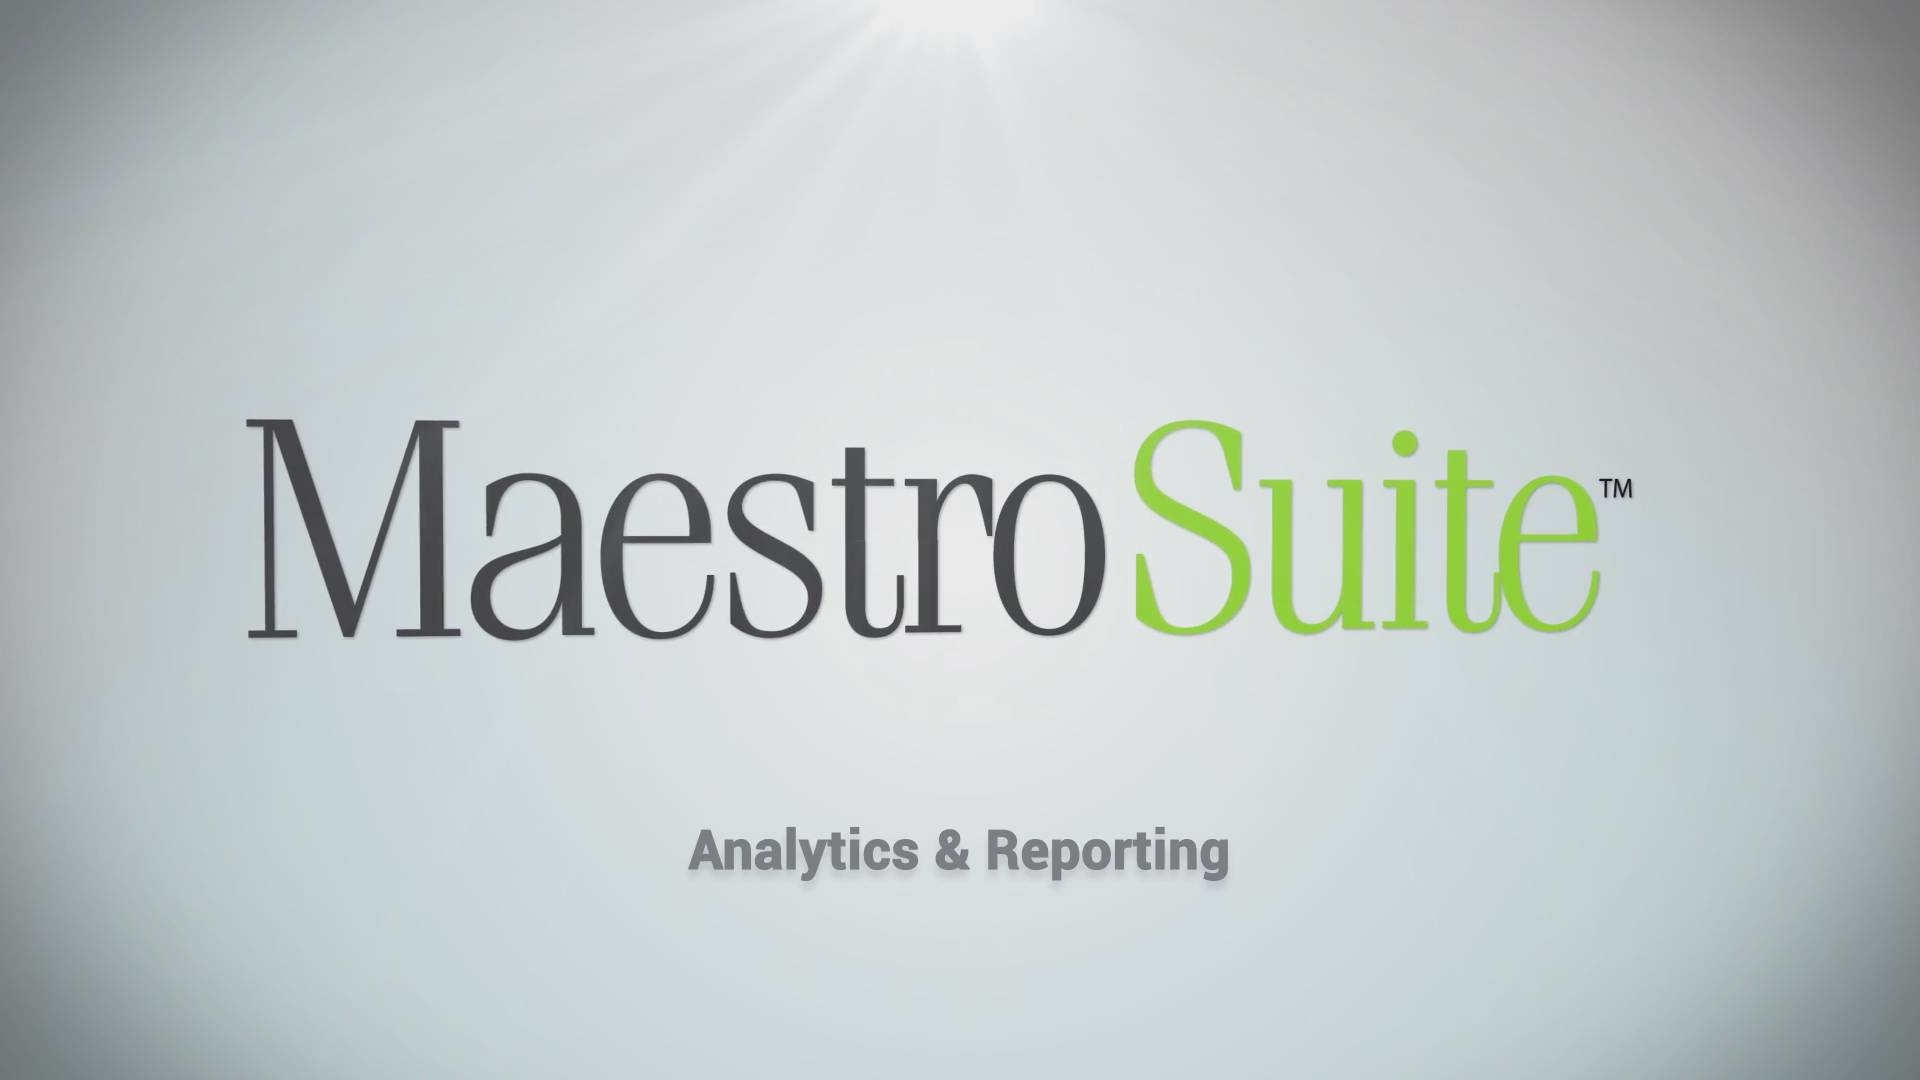 Business Analytics And Financial Reporting With Maestro Suite